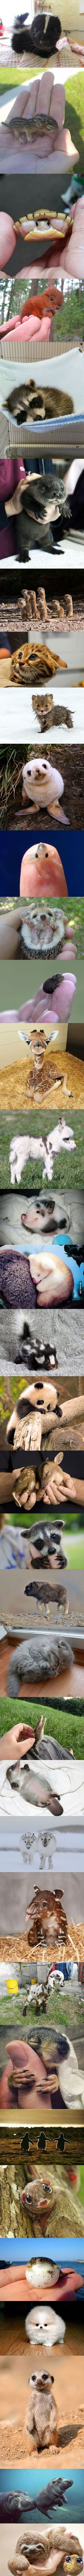 Cute baby animals collection!